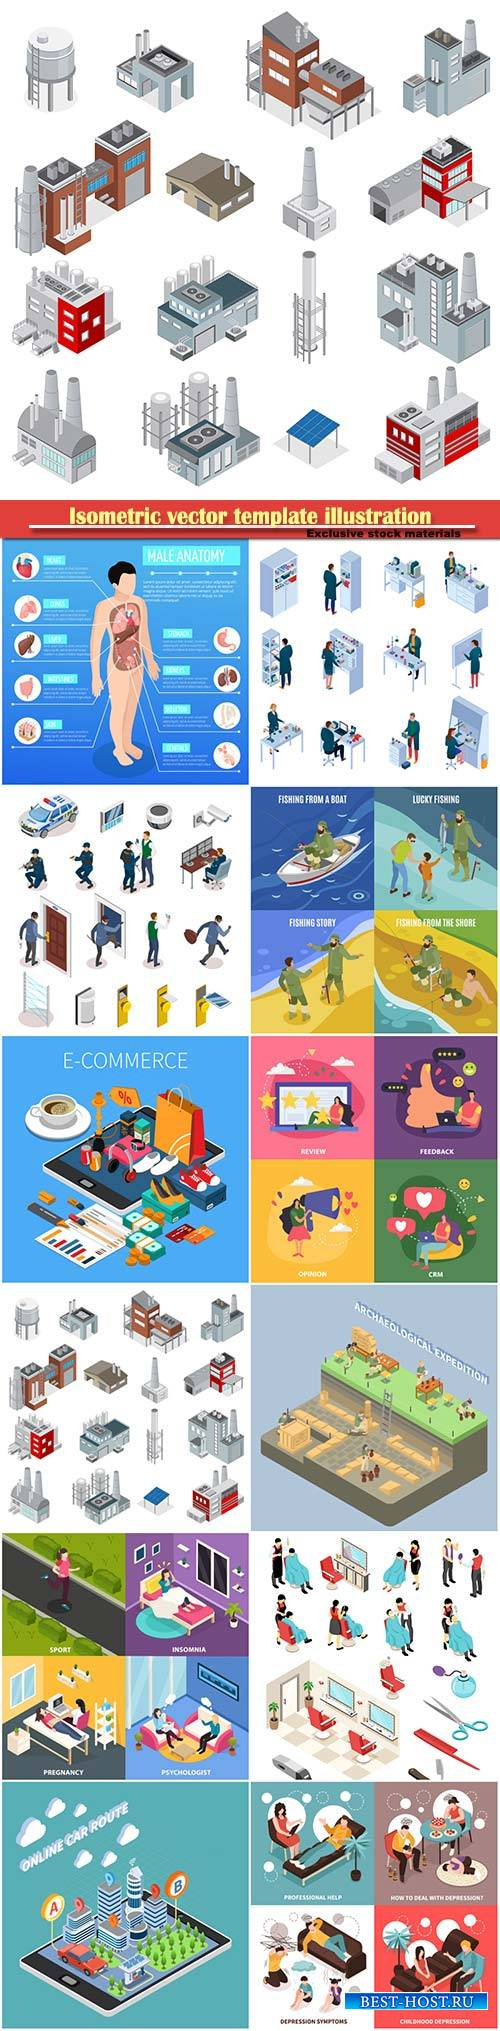 Isometric vector template illustration # 12